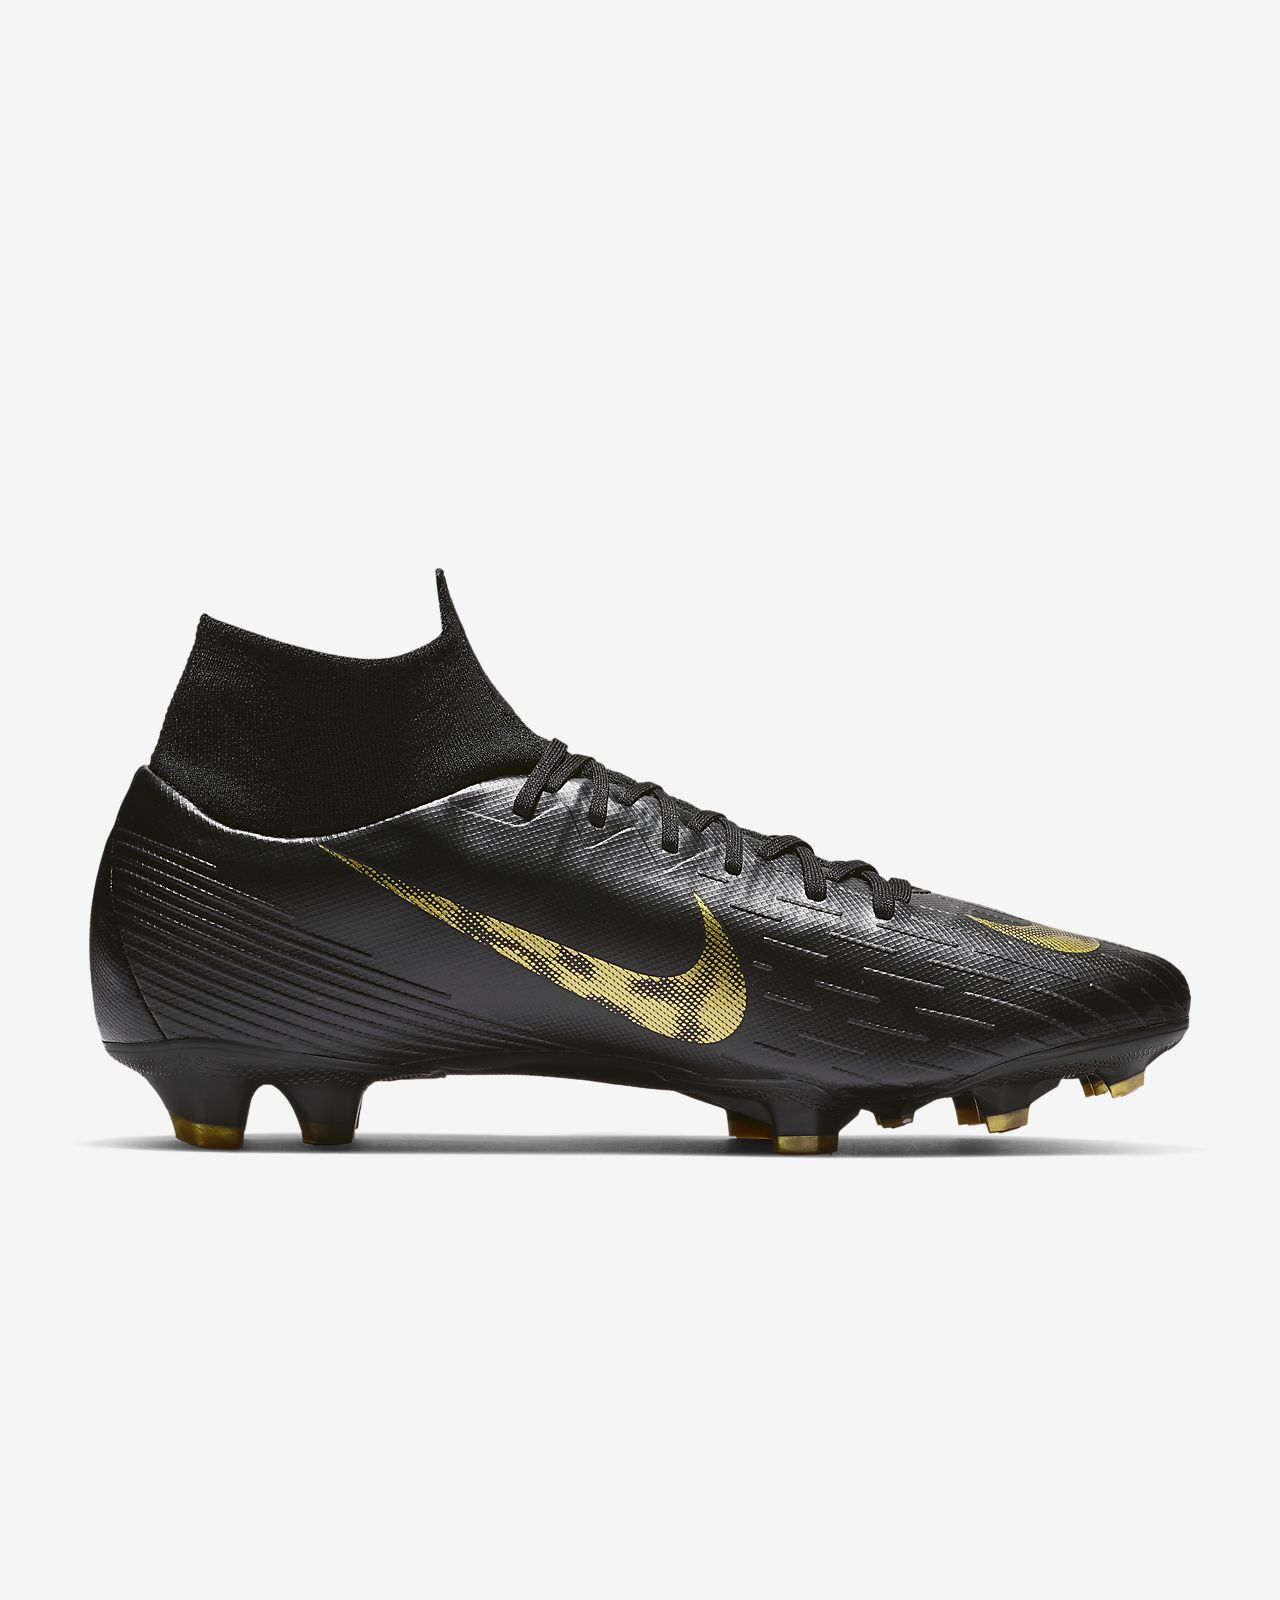 c8908568b4c Nike Superfly 6 Pro FG Firm-Ground Football Boot. Nike.com CA